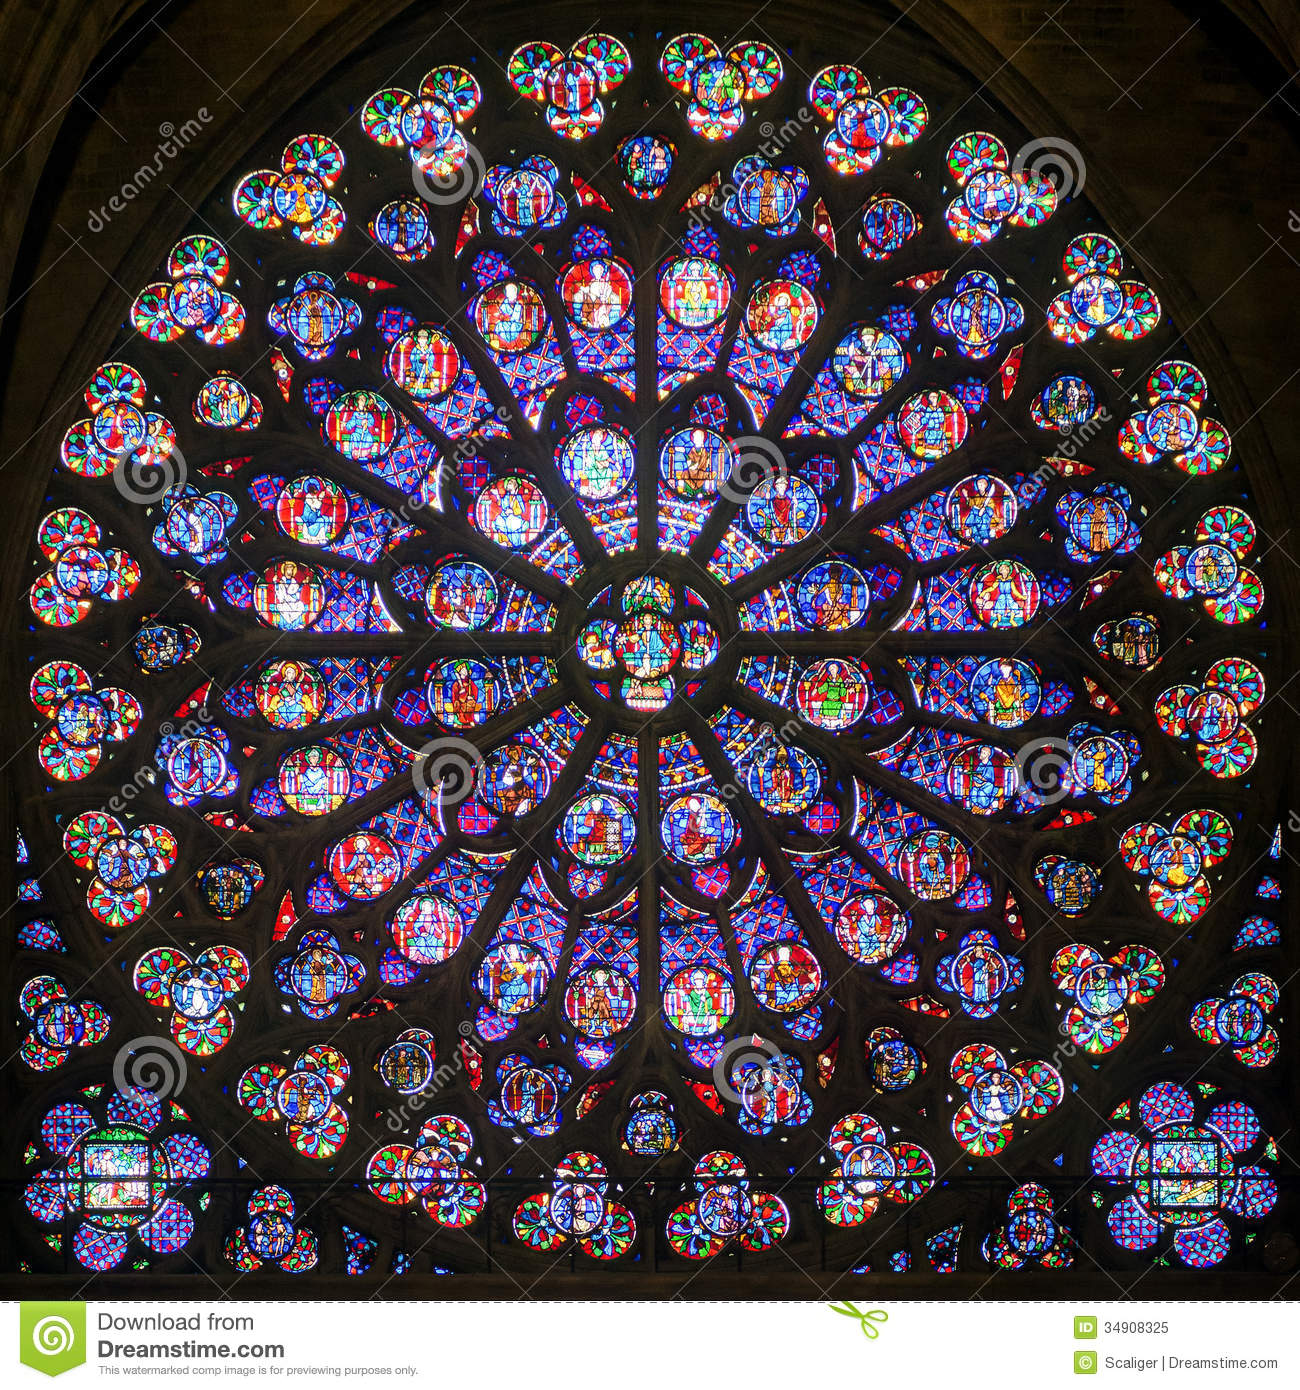 Rose Stained Glass Window In The Cathedral Of Notre Dame